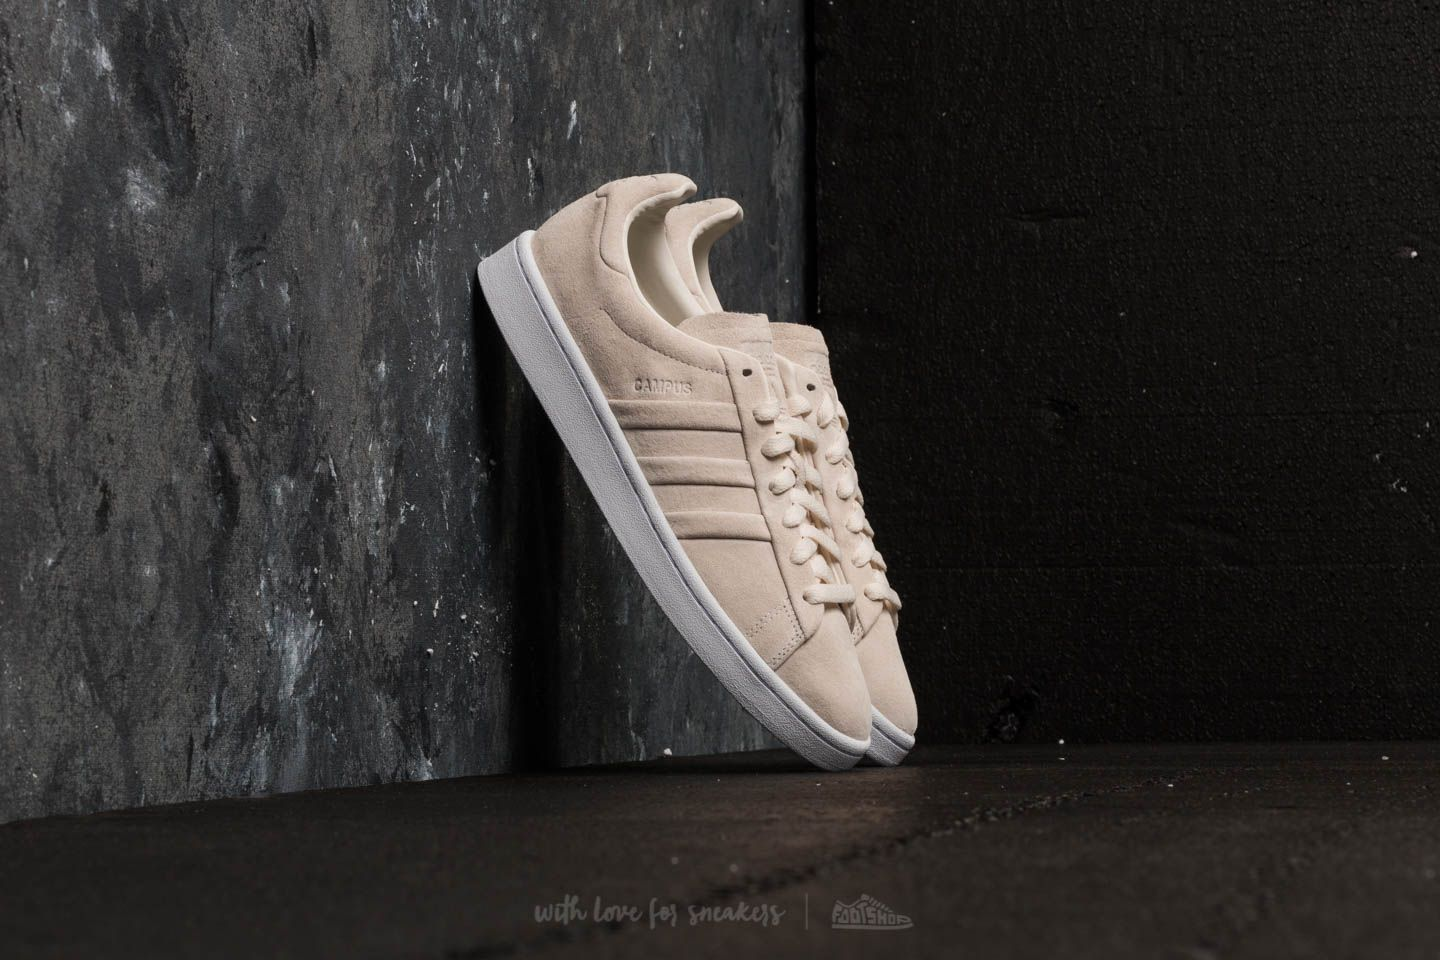 And Adidas Chalk Campus Turn Ftw Stitch White shdQCtr